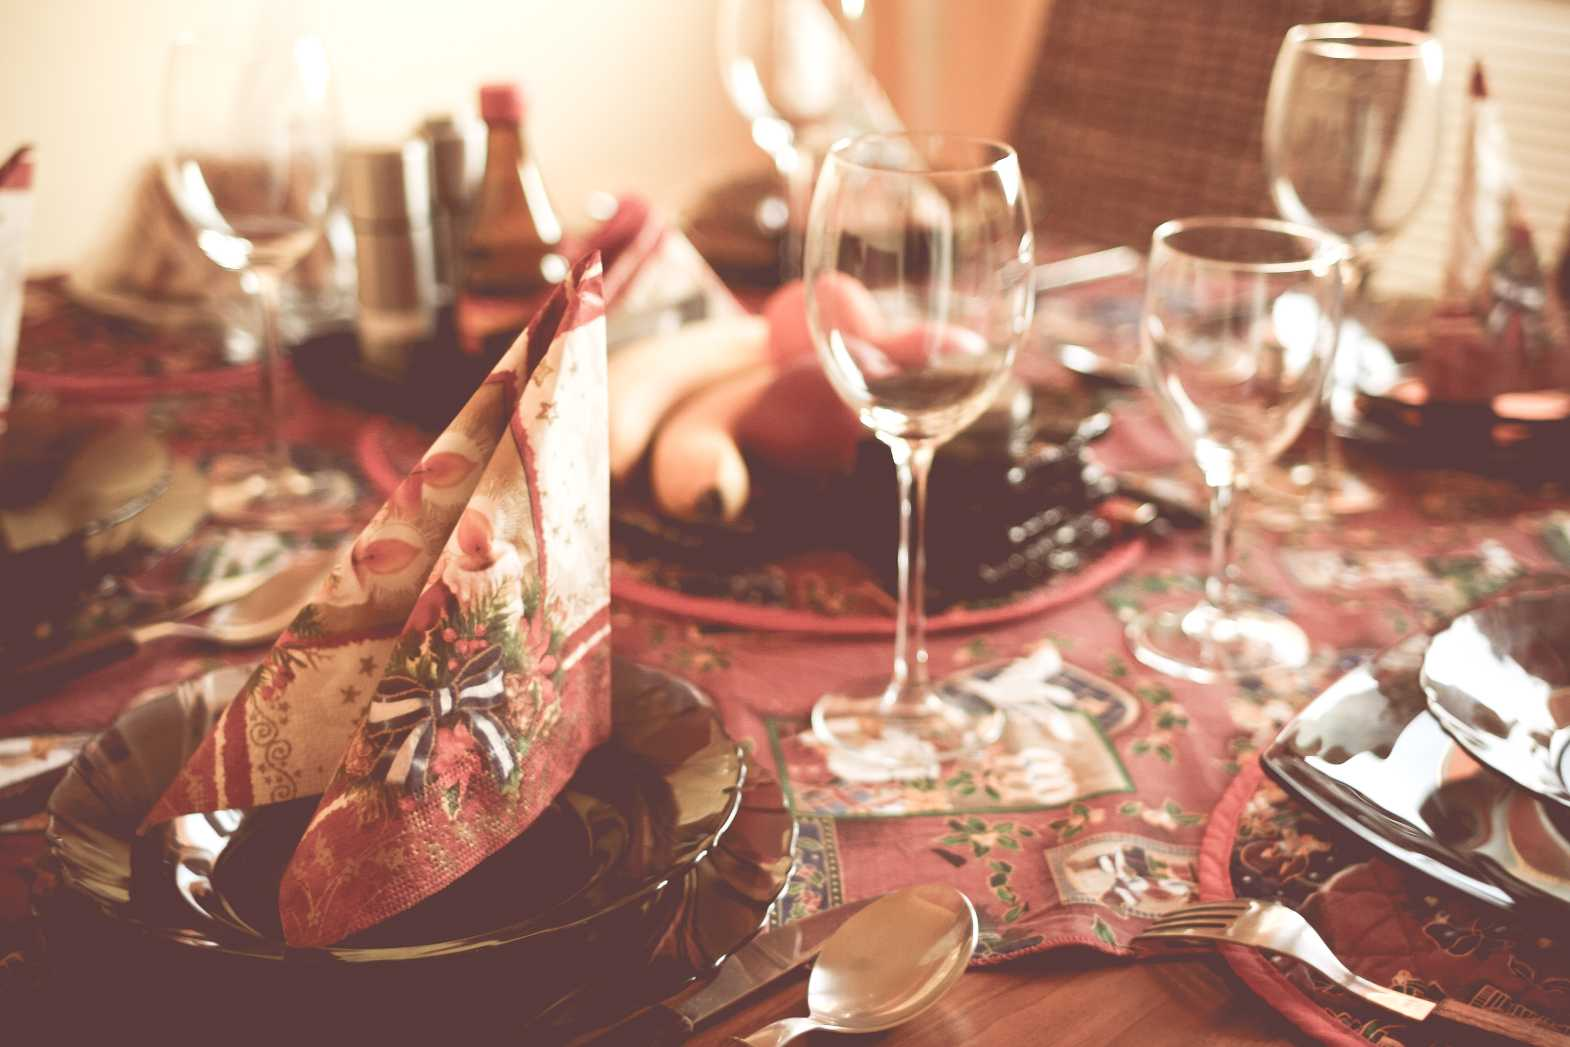 table setting free stock image download